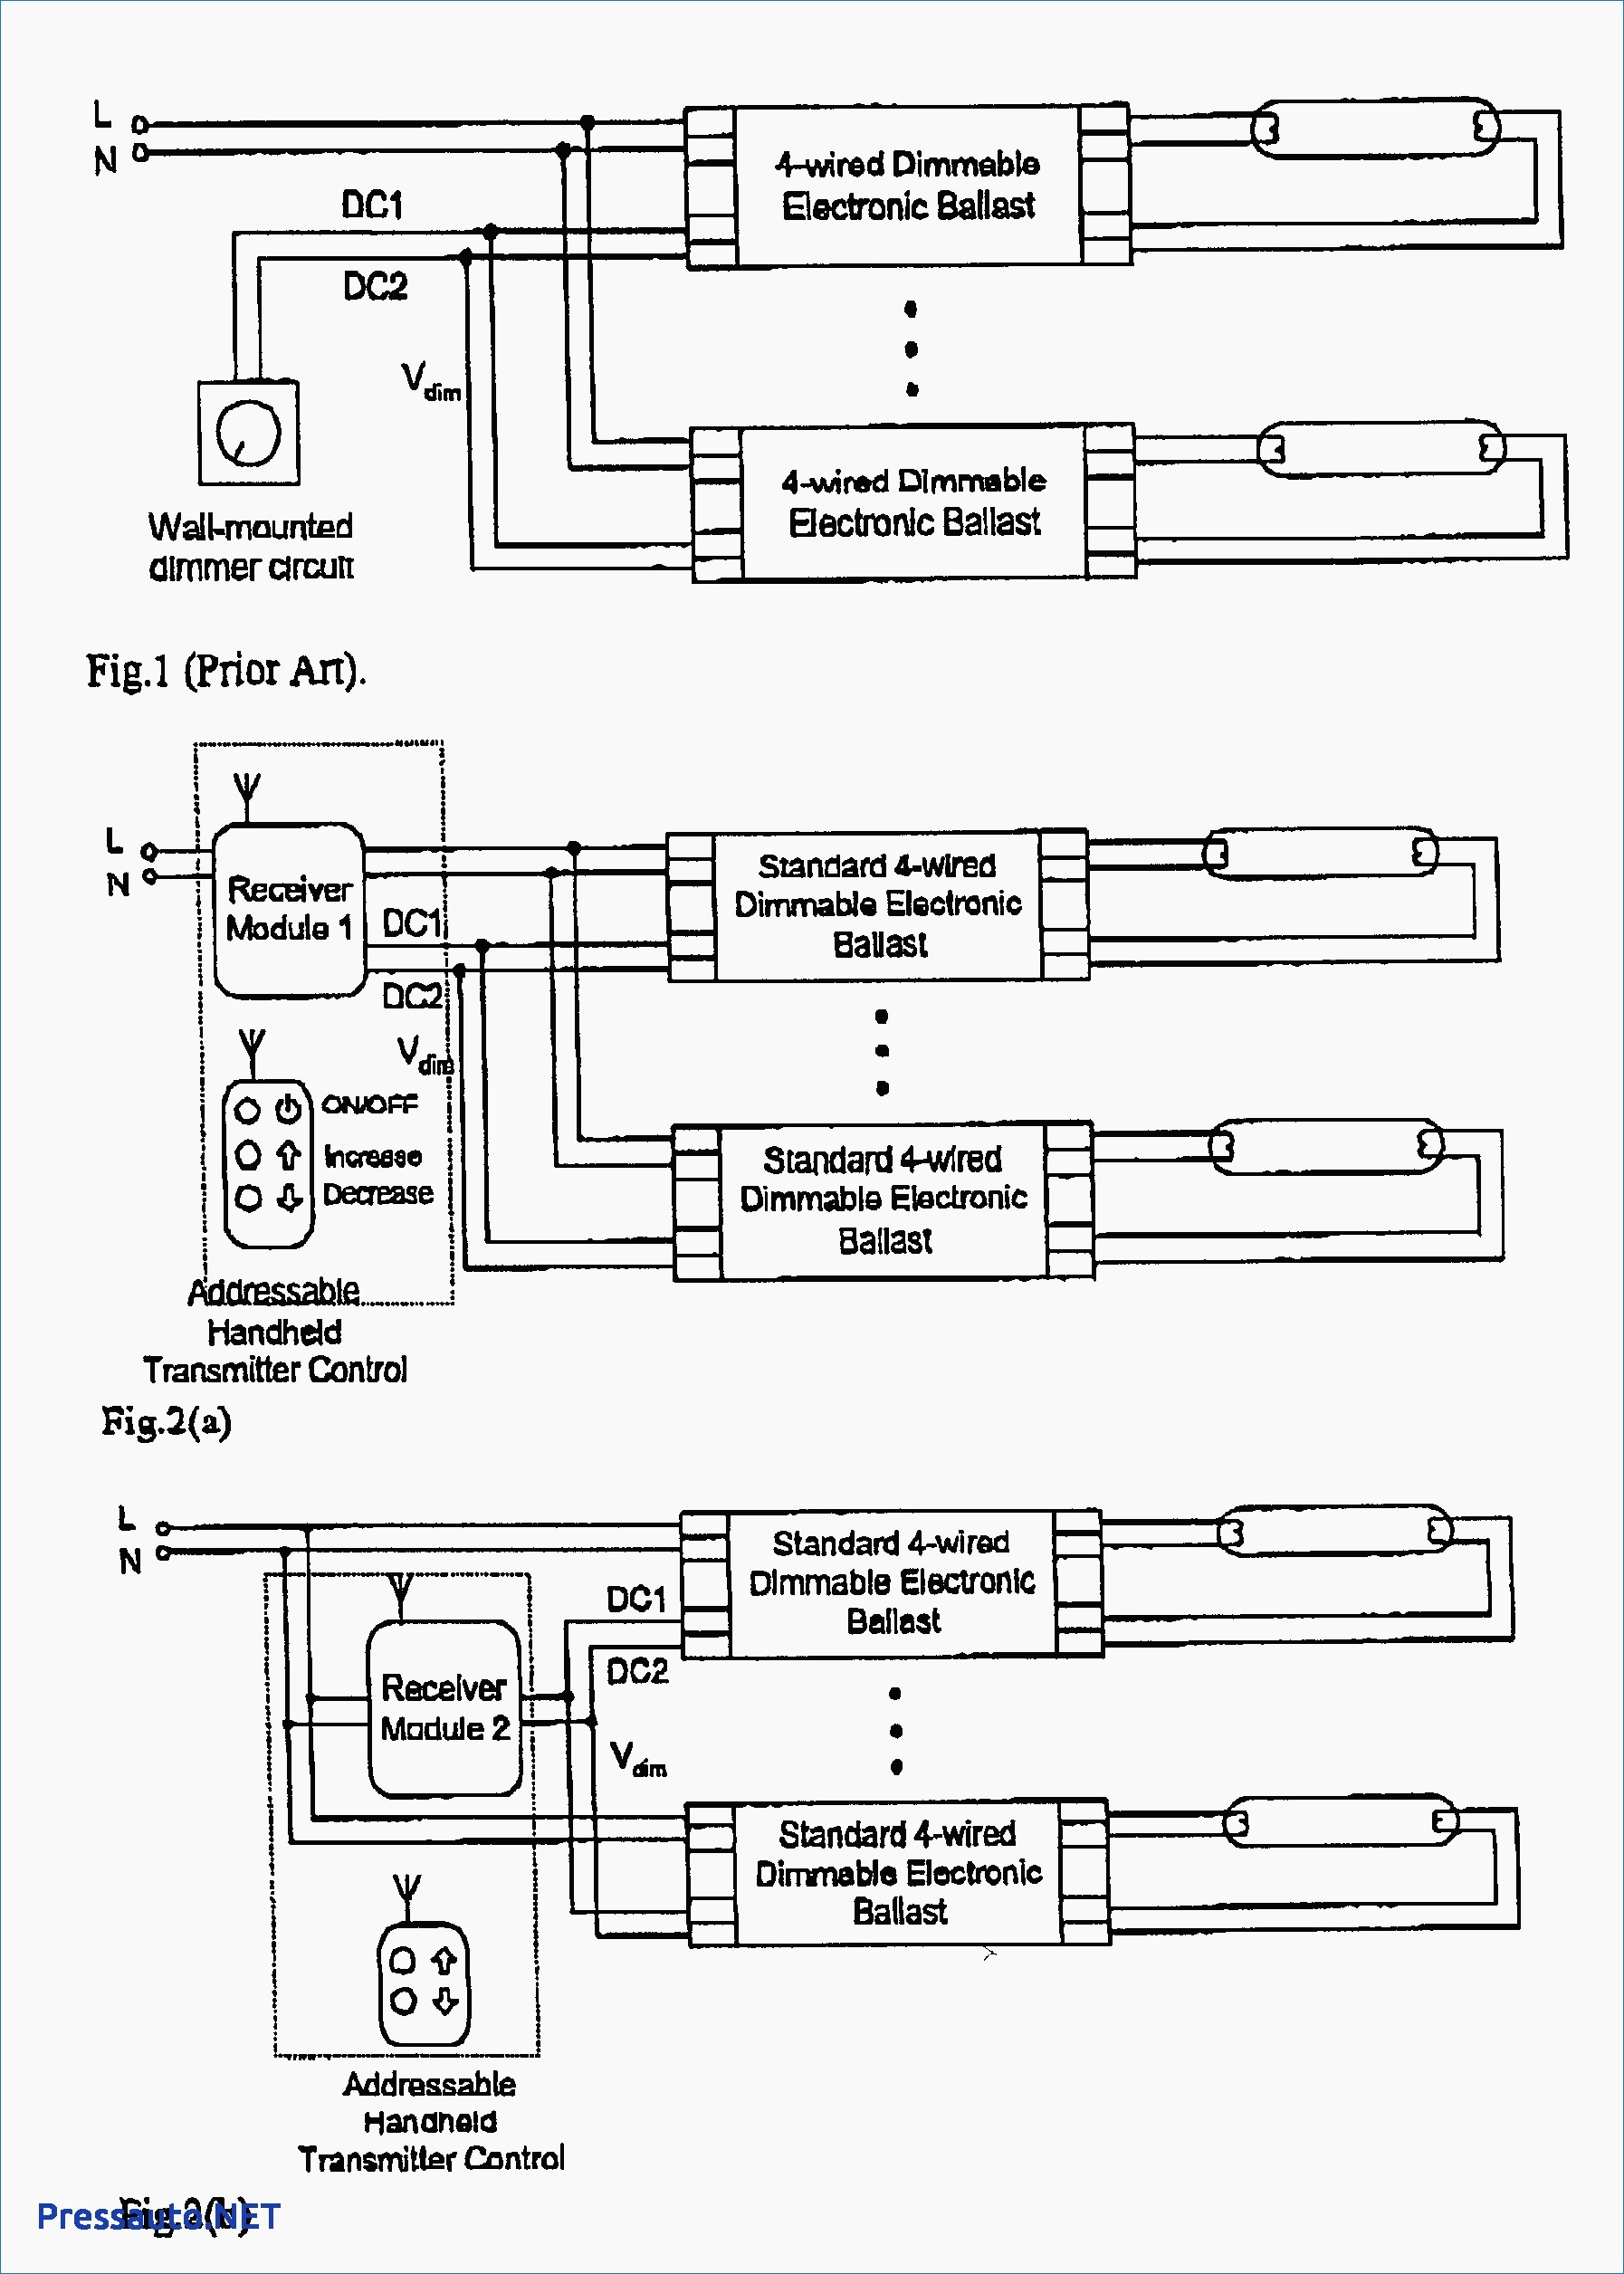 dimming ballast wiring diagramn private sharing about wiring diagram u2022 rh gracedieupriory co uk mark 7 dimming ballast wiring diagram step dimming ballast wiring diagram